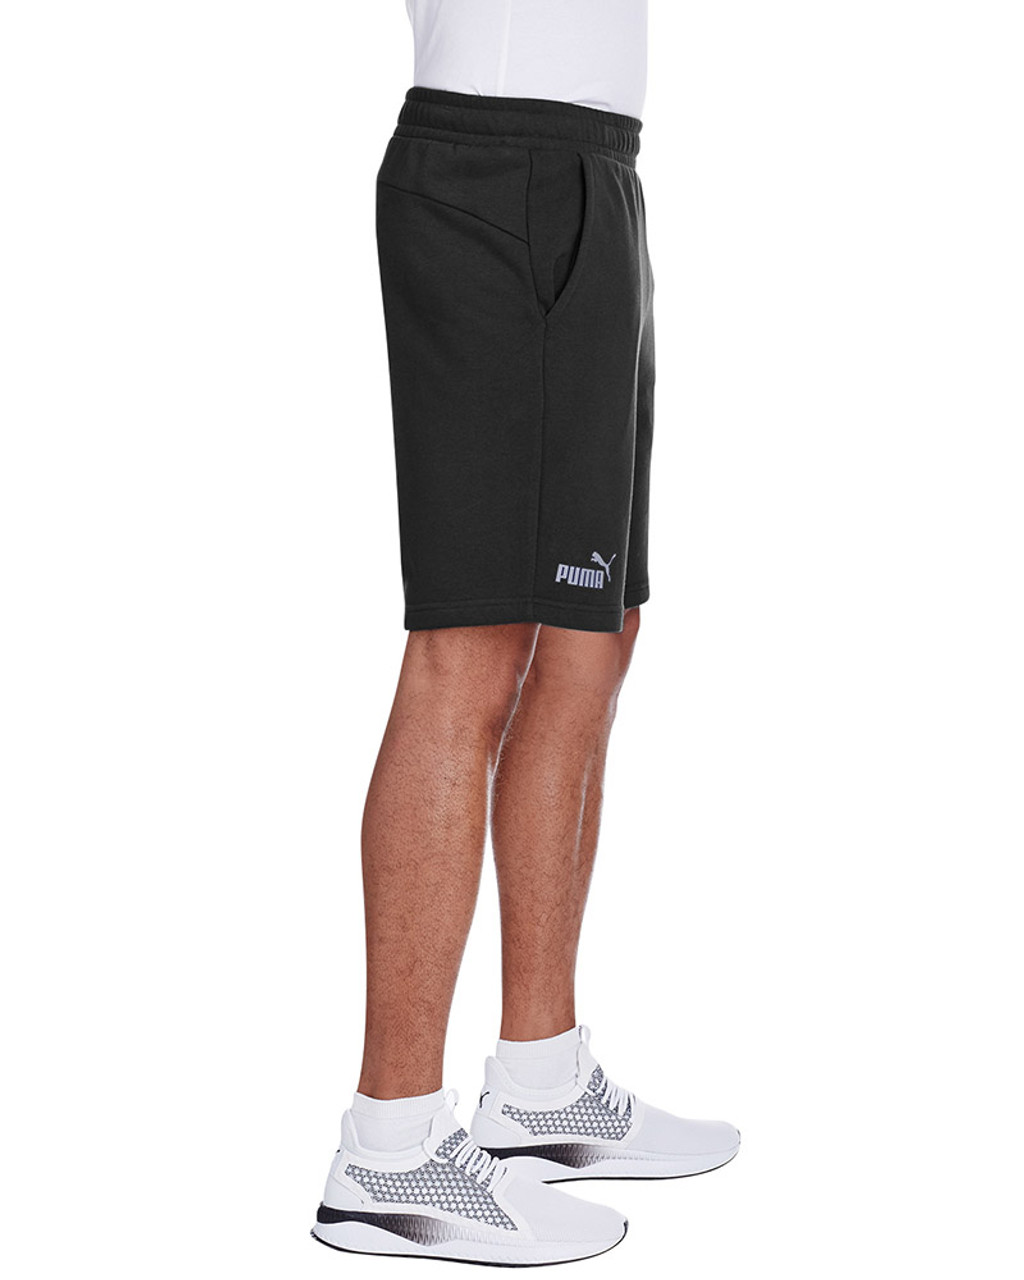 Puma Black/Smoke Pearl - side, 582008 Puma Sport Essential Adult Bermuda Short | Blankclothing.ca